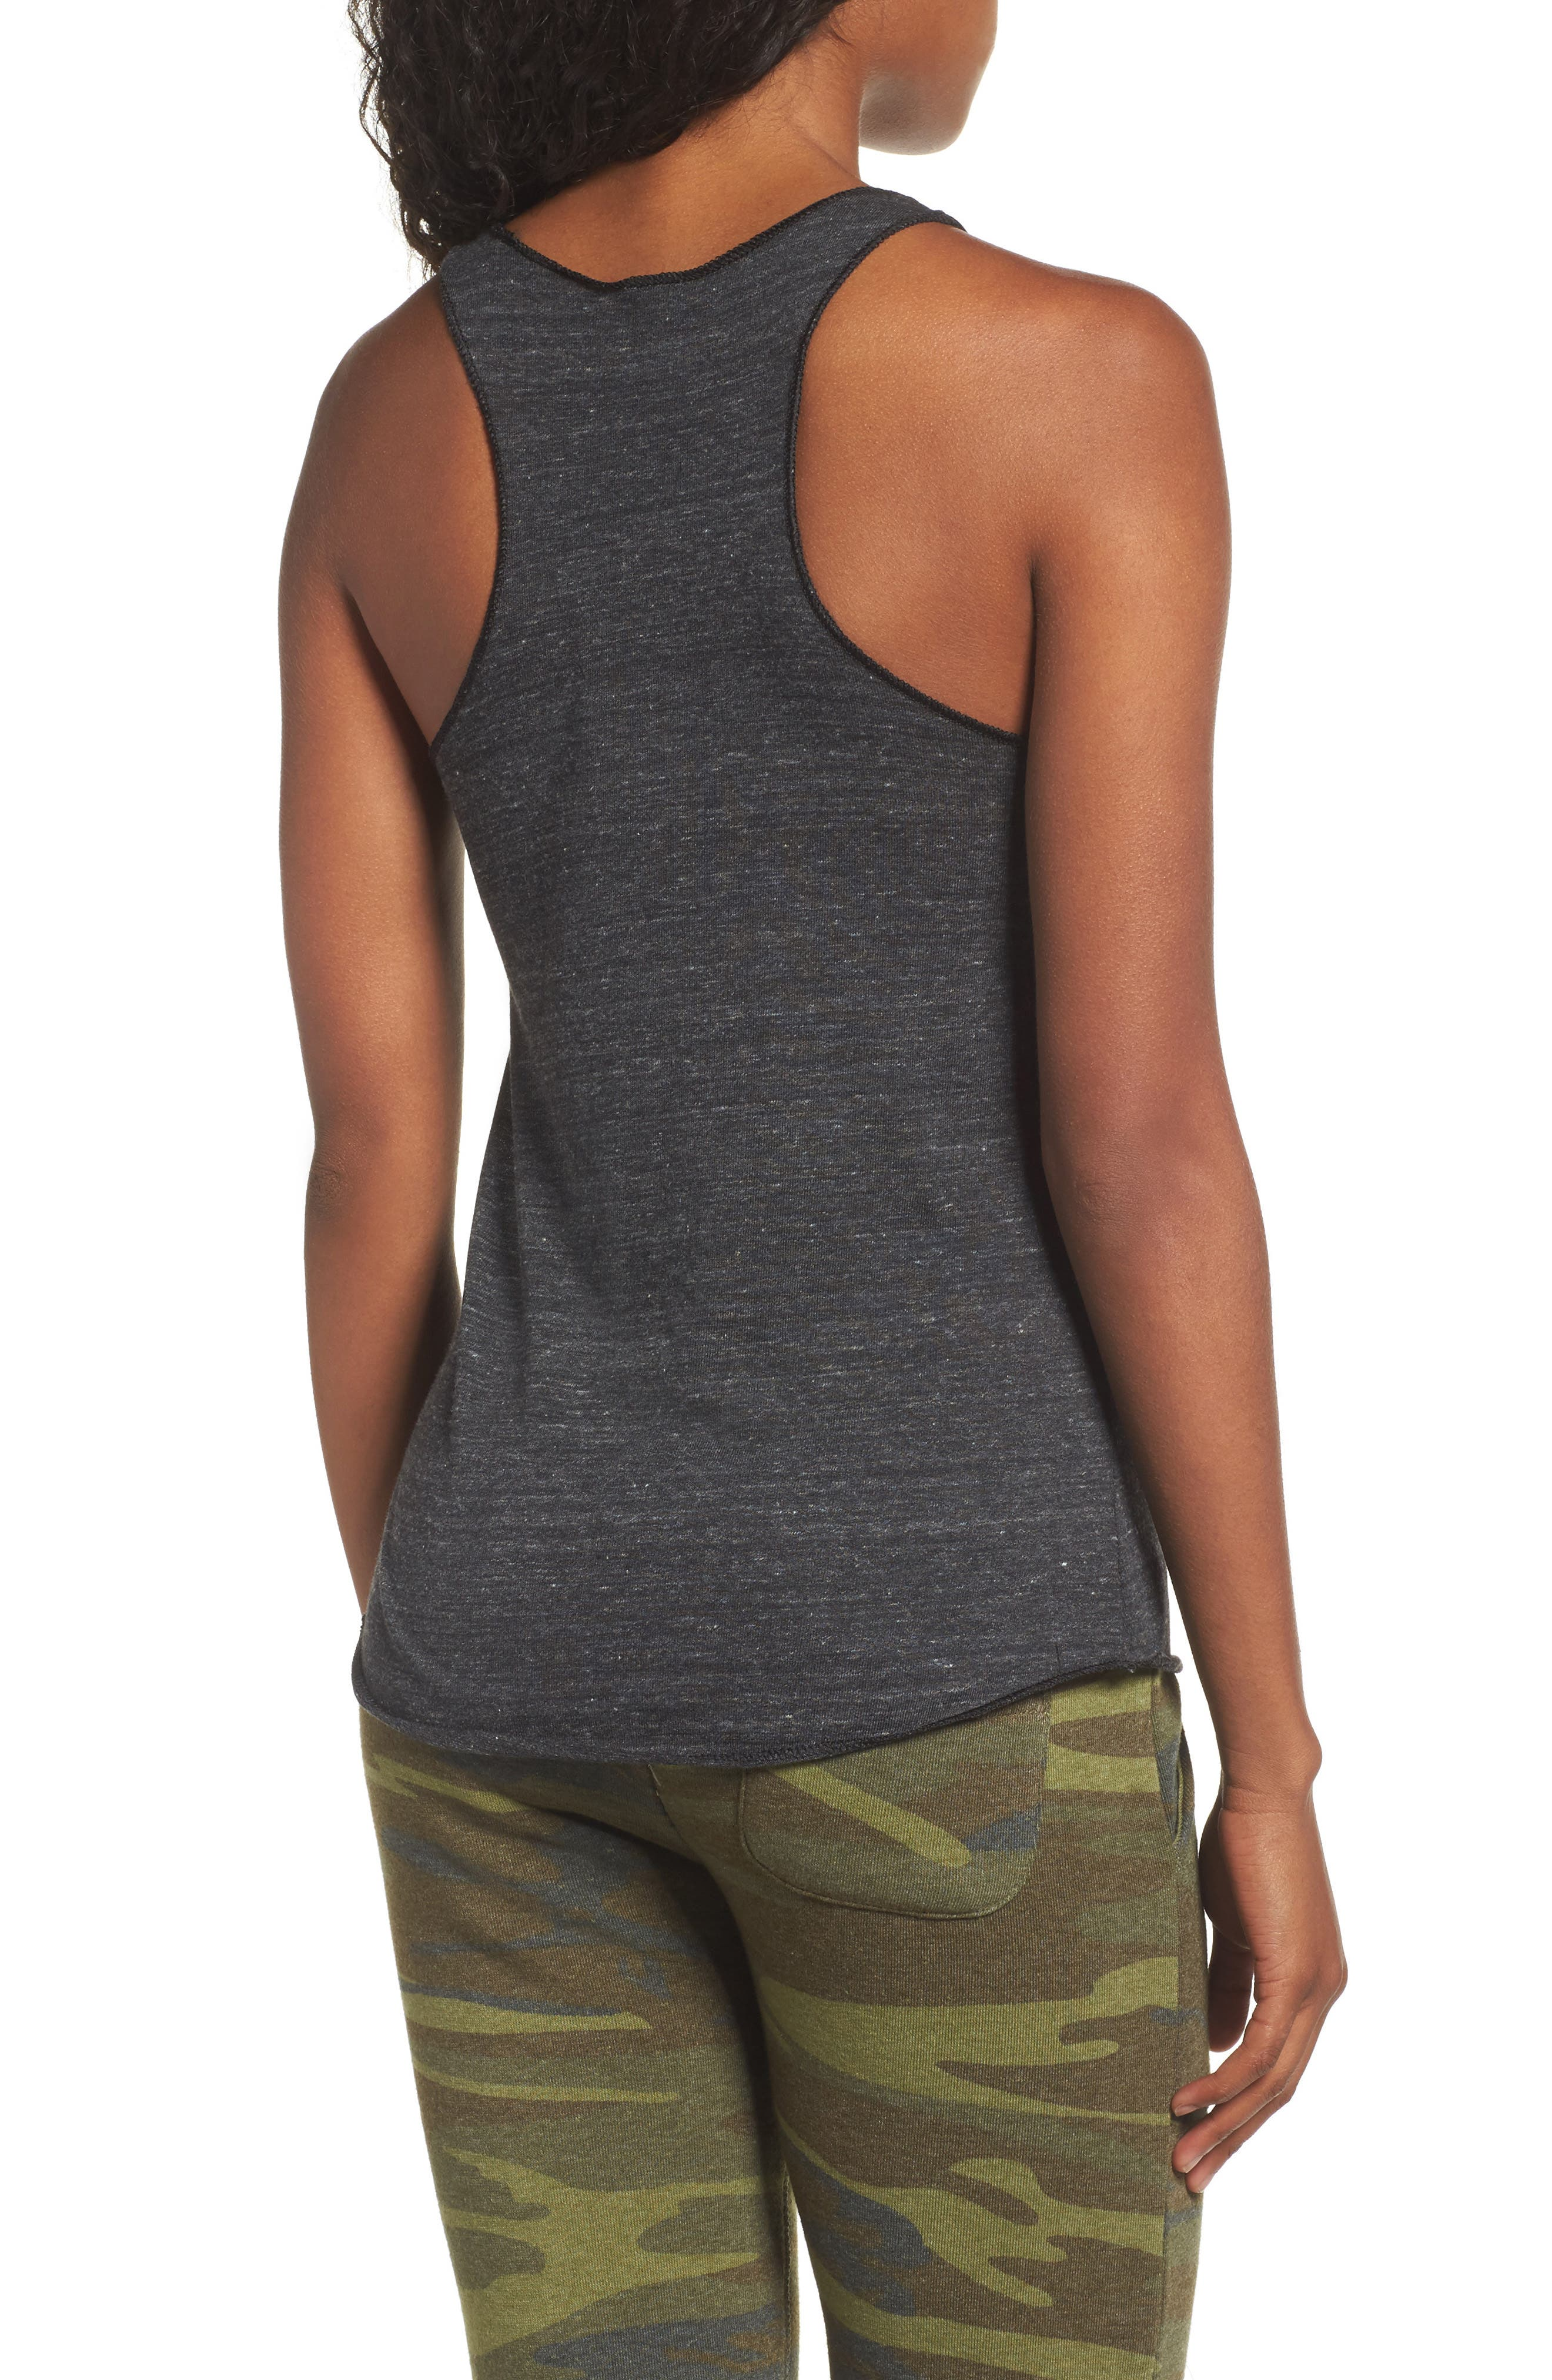 Meegs Racerback Tank,                             Alternate thumbnail 2, color,                             009